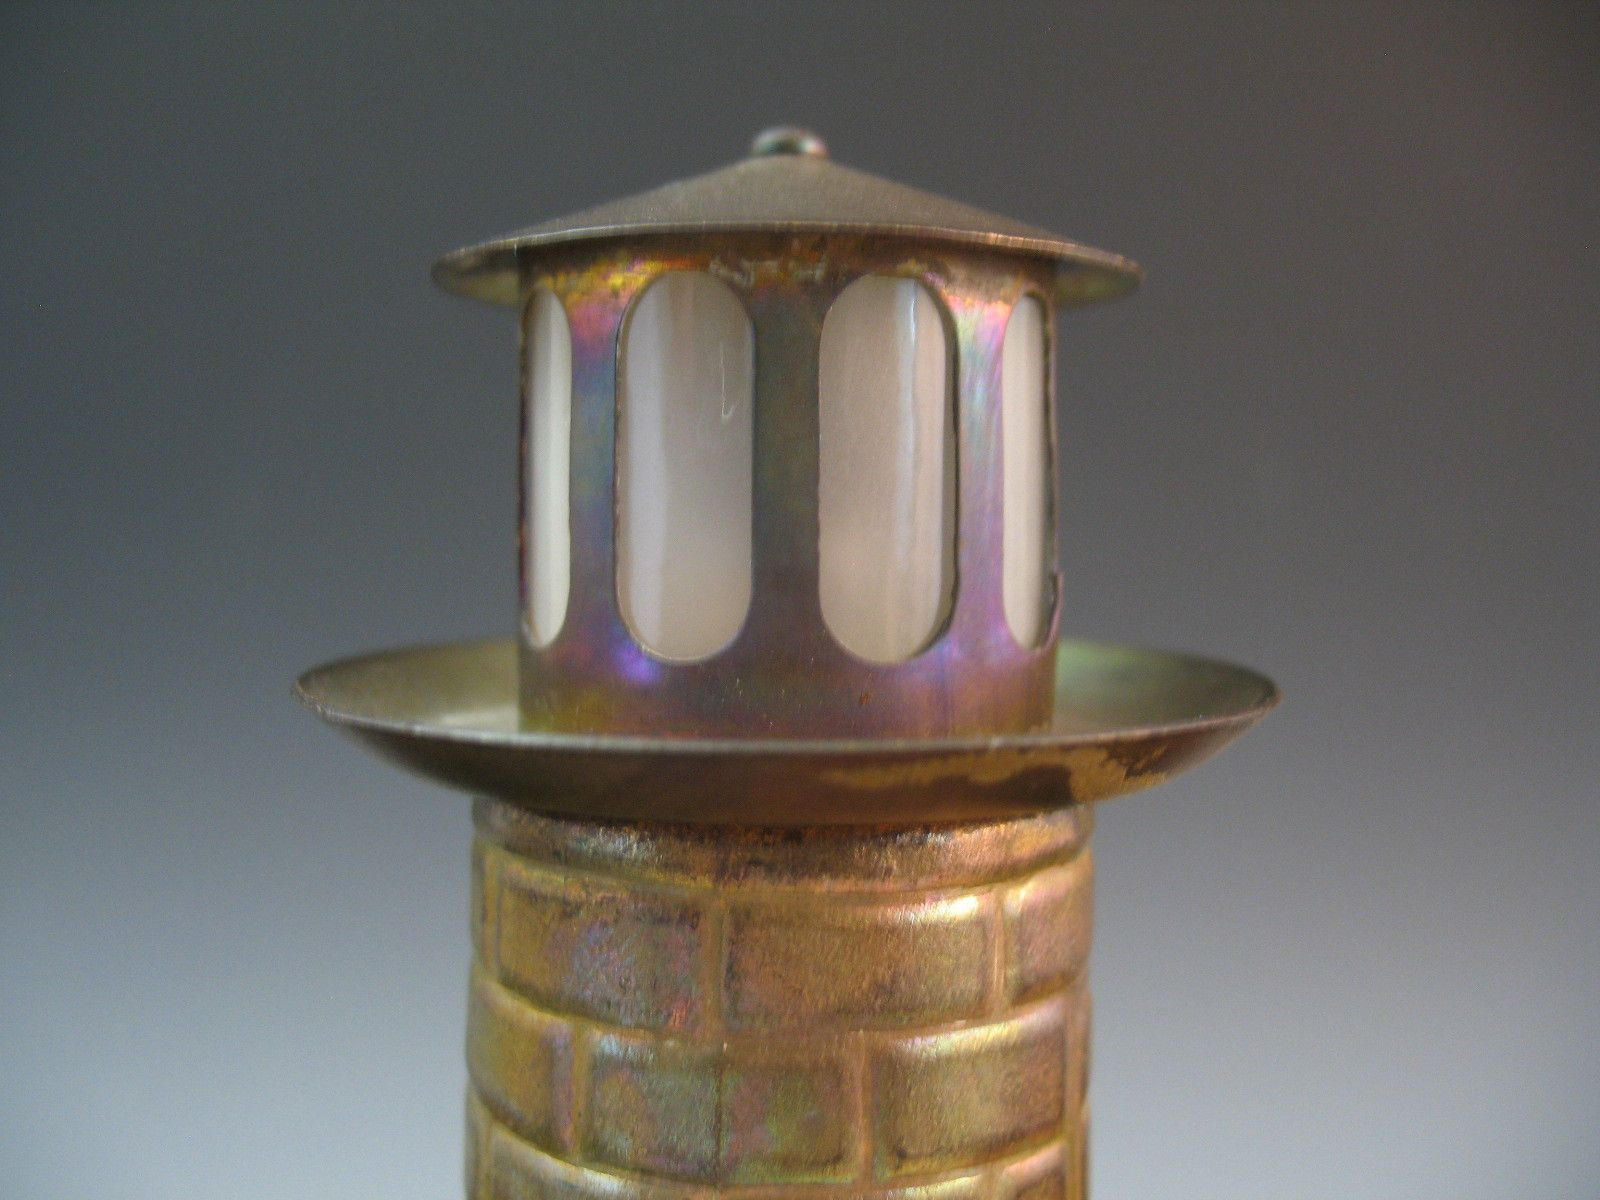 Chase brass and copper company addition turner construction company - Early 20th C Chase Brass Copper Co Lighthouse Battery Lamp Working Nighlight Ebay